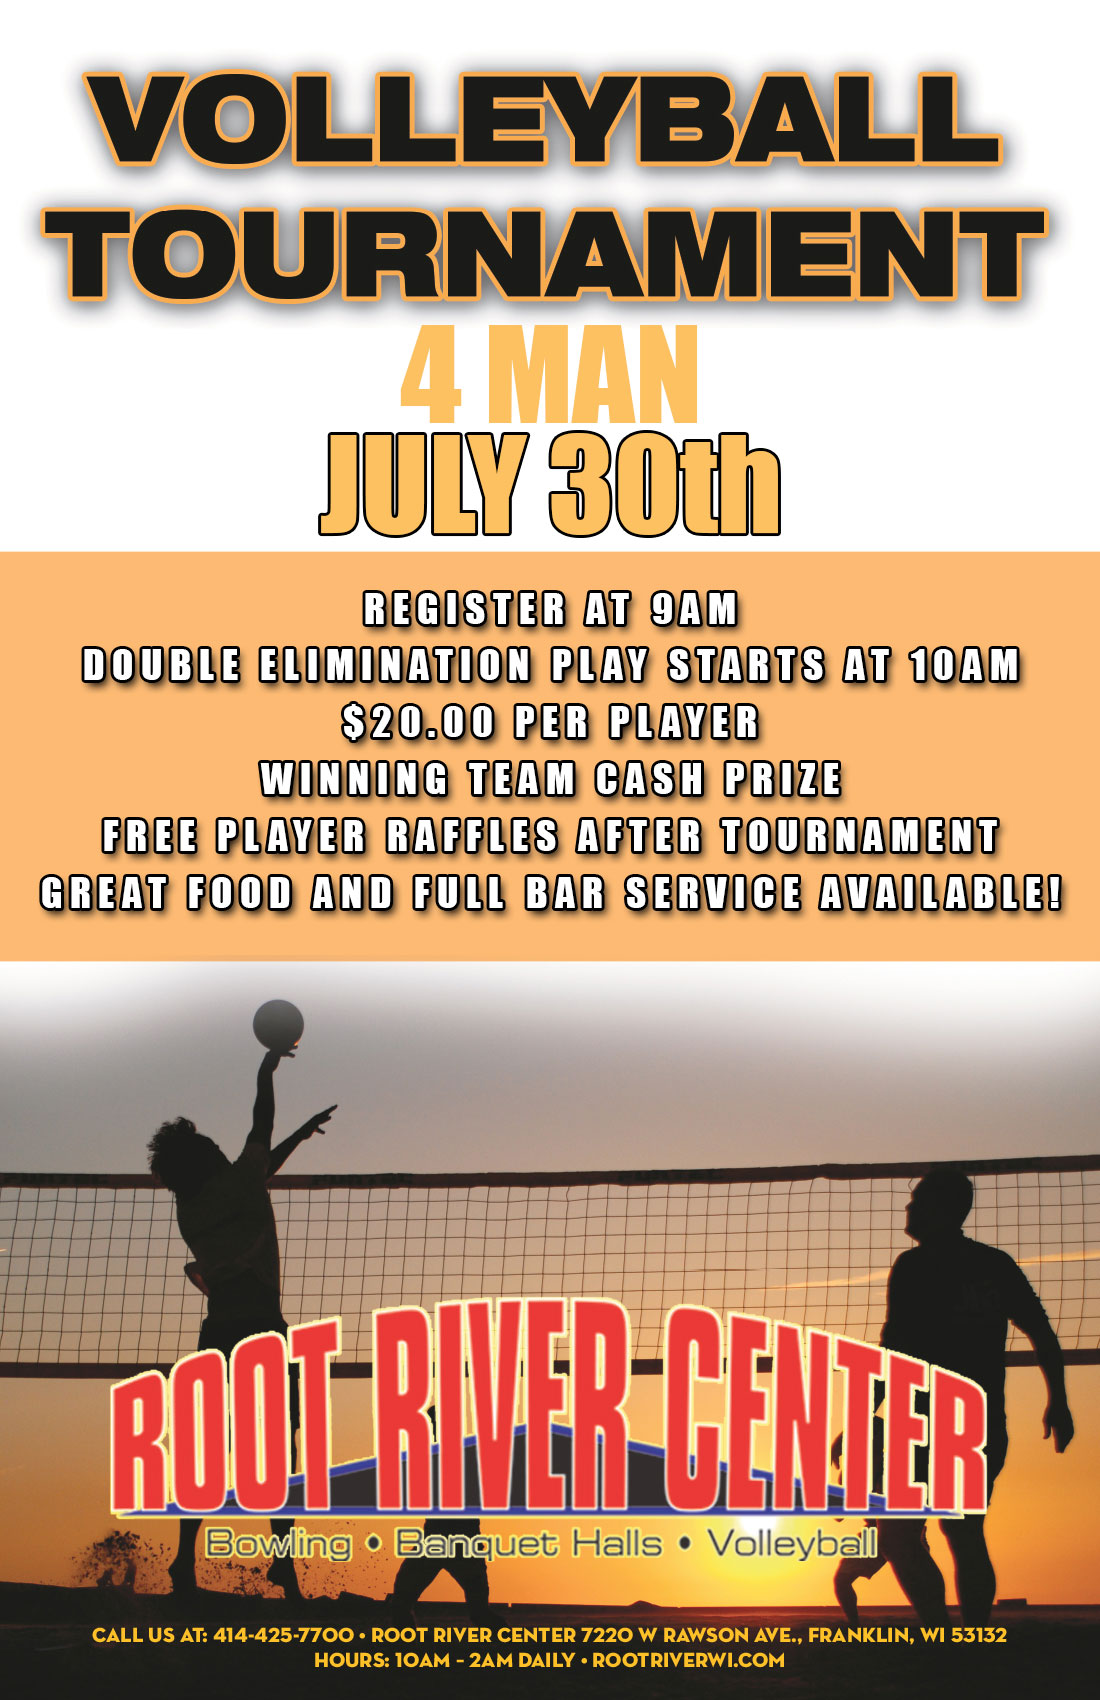 July 30th 2016 4 Man Volleyball Tournament Flyer